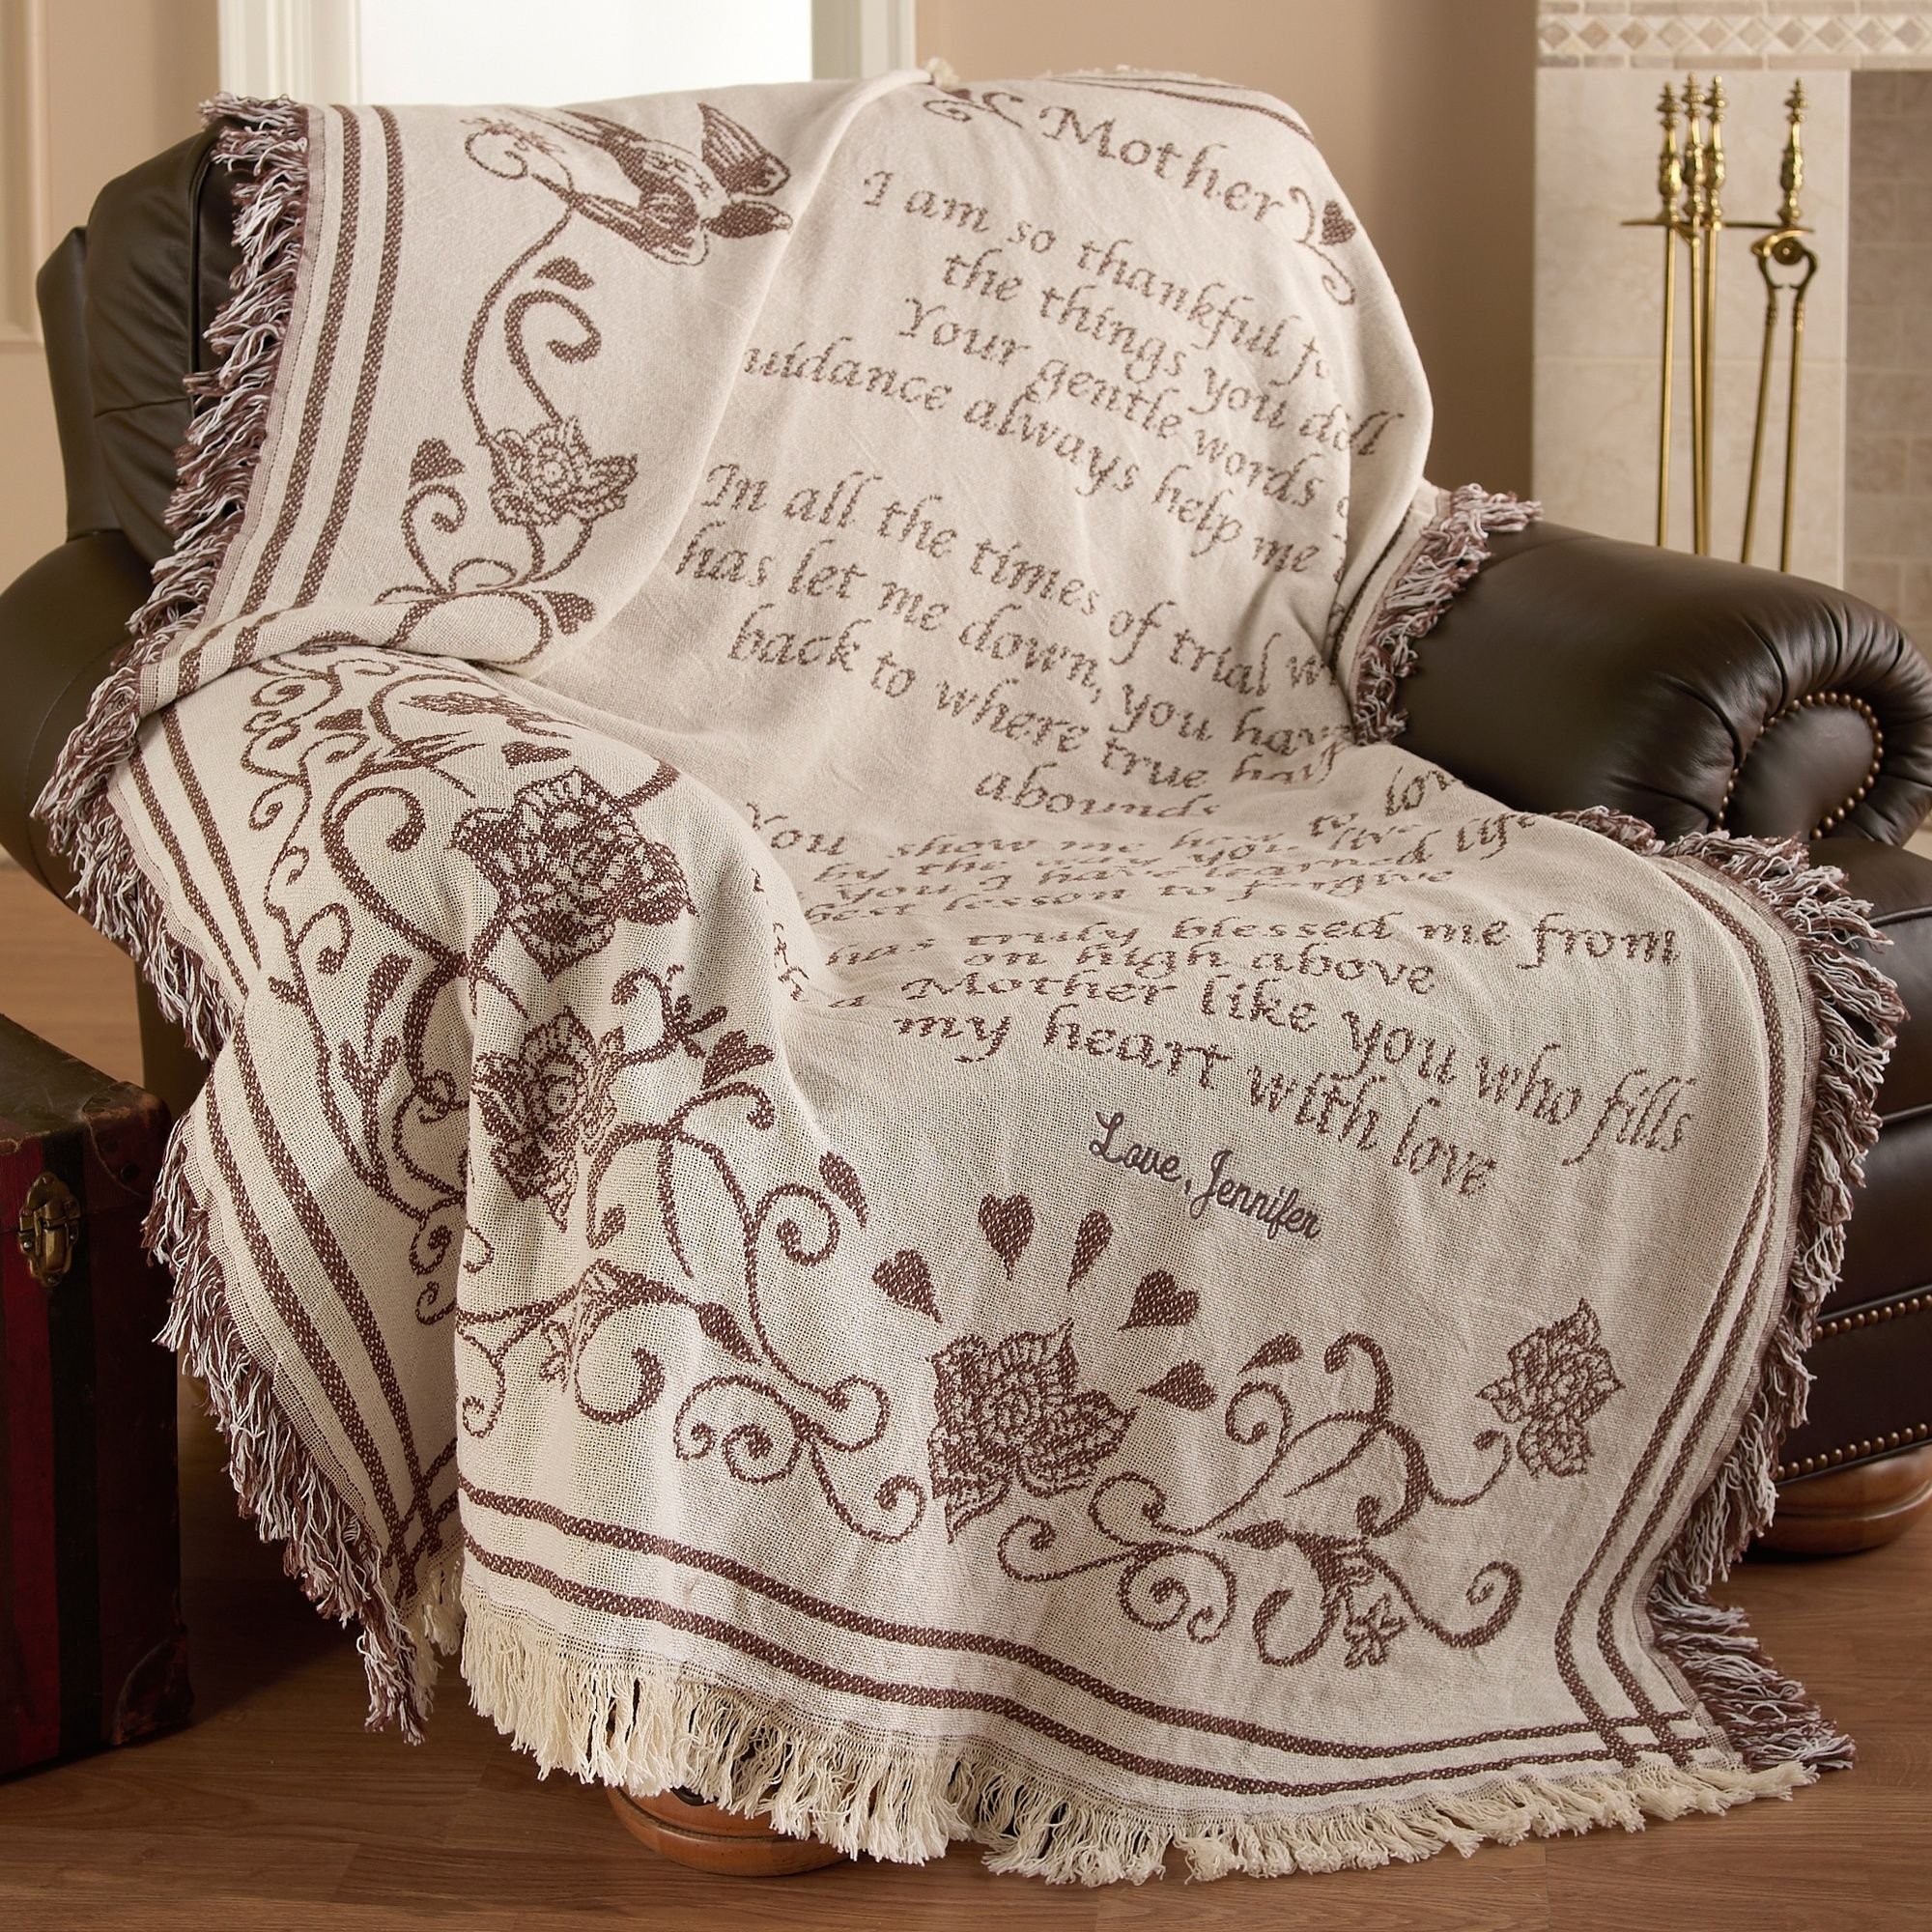 Gift From Bride To Mother: Personalized Mother's Woven Blanket